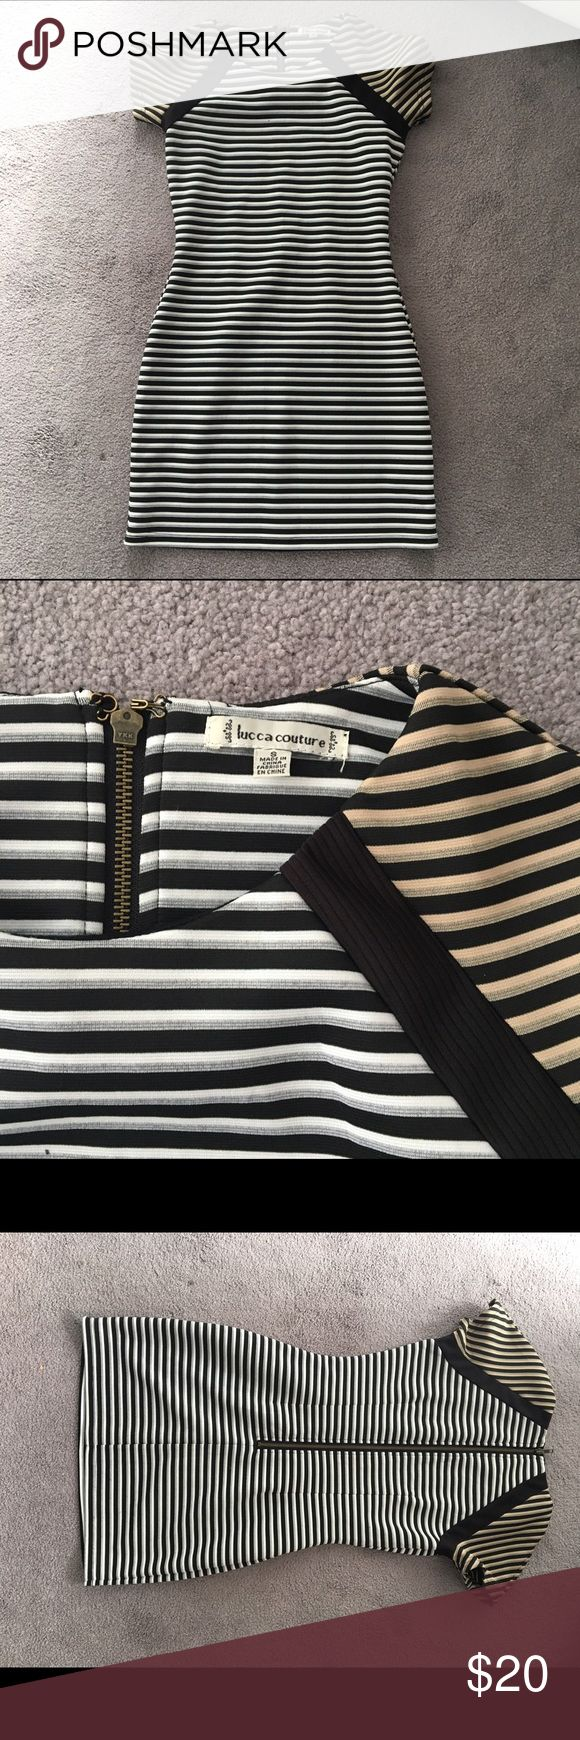 Urban outfitters striped body con dress Small striped body con dress from urban outfitters - worn once or twice Urban Outfitters Dresses Mini